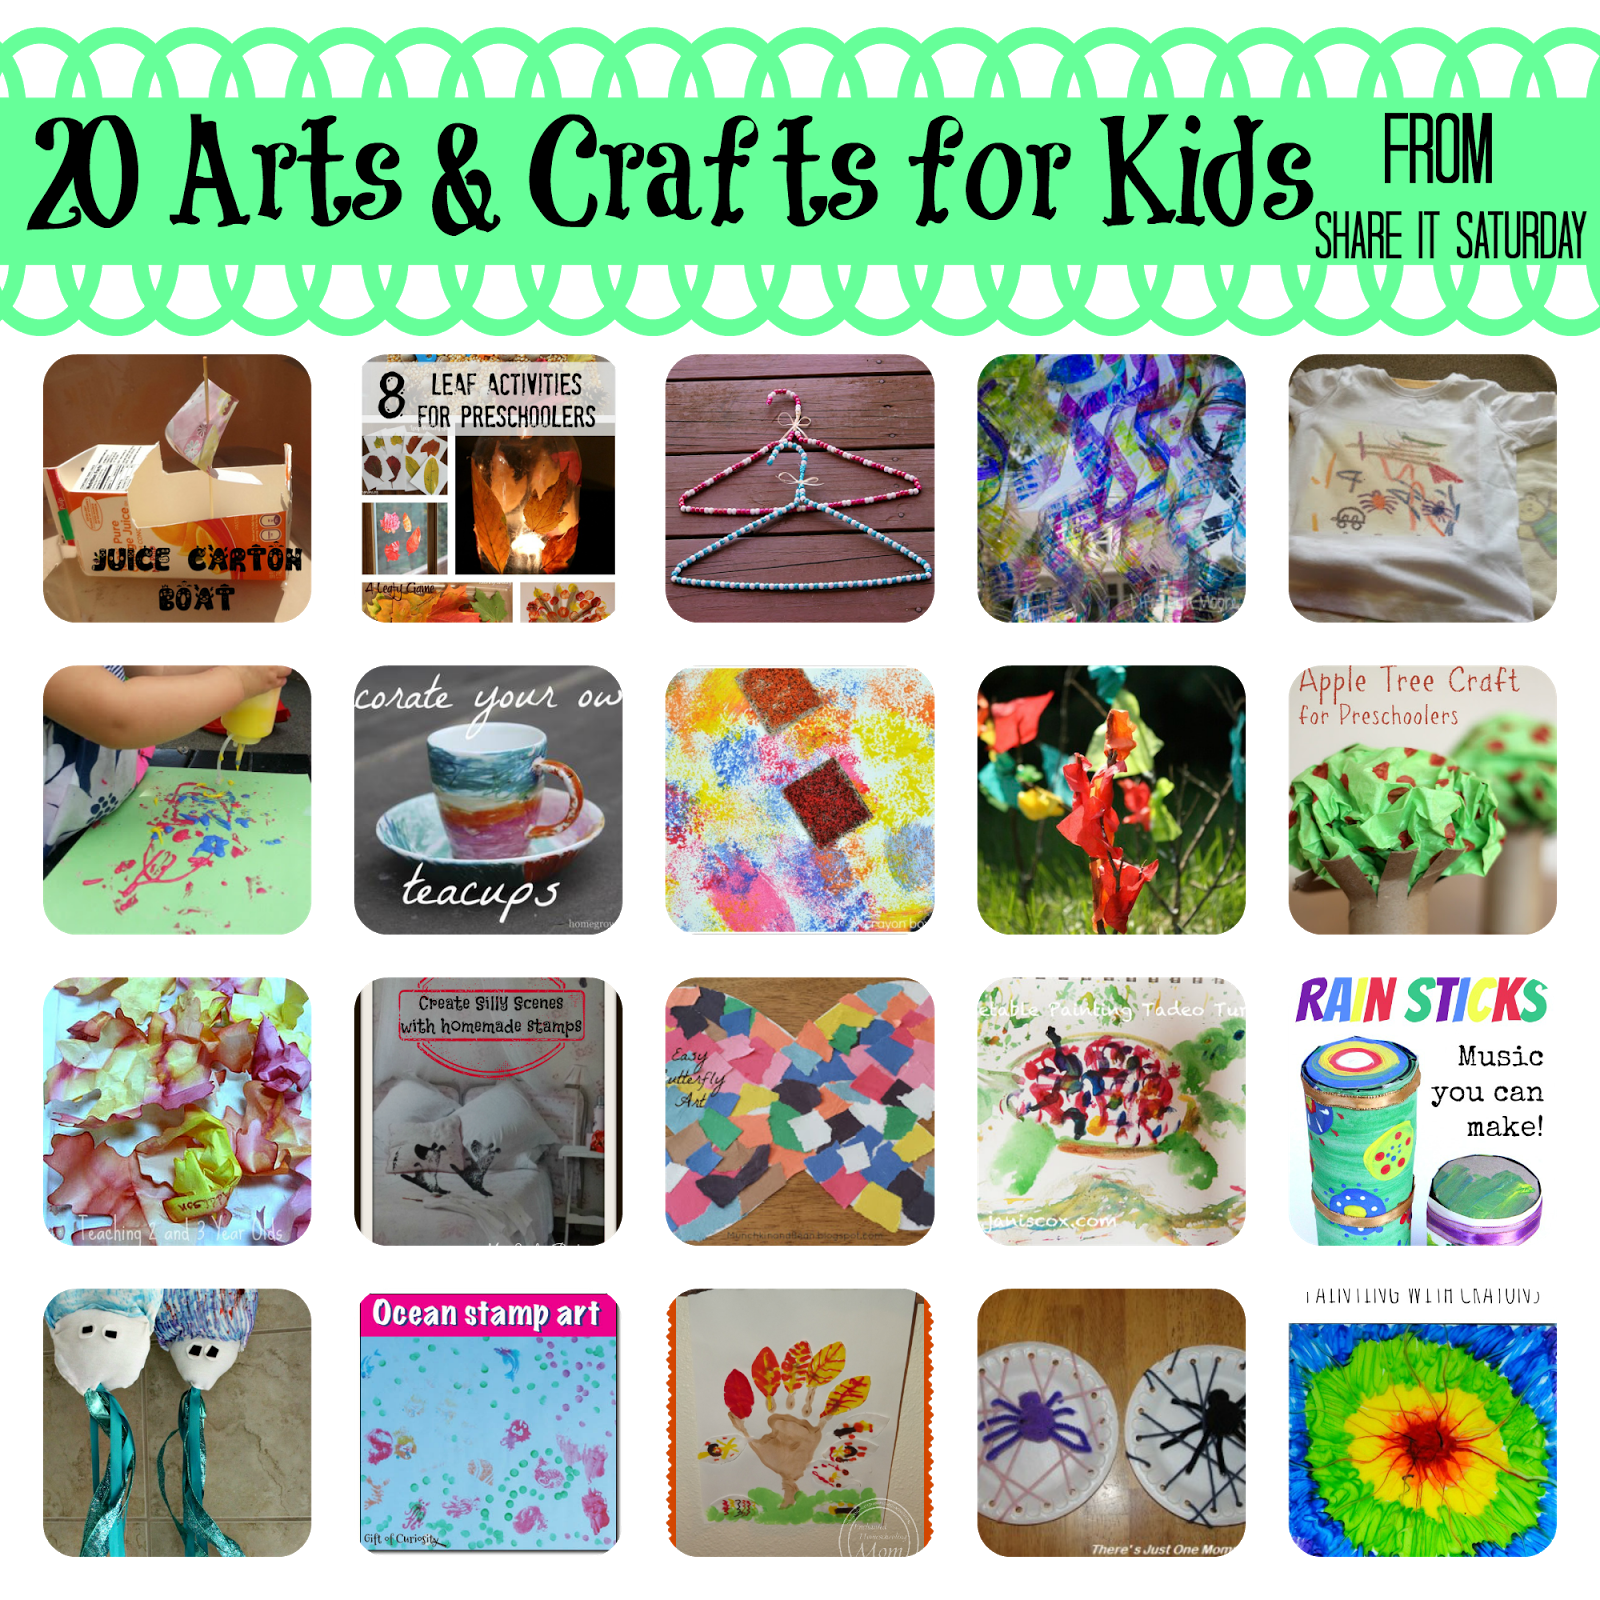 Arts And Crafts Ideas For Toddlers At Home 14 Creative Preschool Activities For Kids Tip Junkie Easy Arts And Crafts For Toddlers Find Craft Ideas Paper Crafts Papercraftstyle Com Part 127 1000